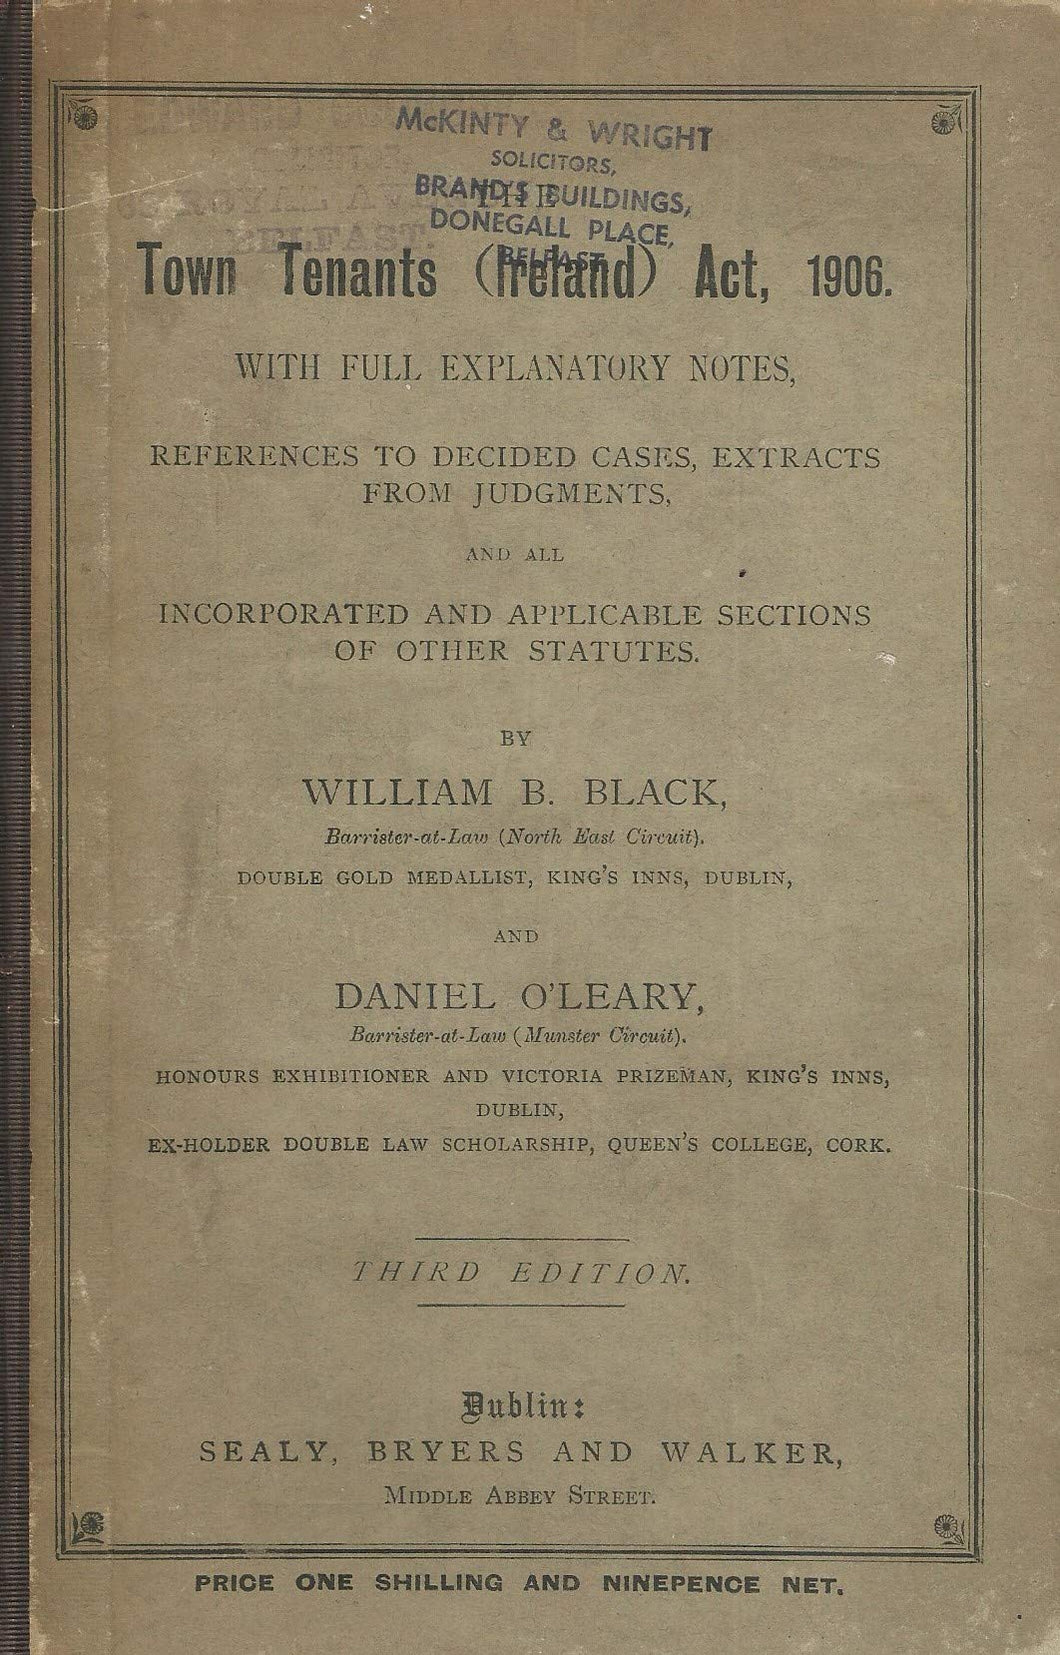 Town Tenants (Ireland) Act, 1906 - Third Edition/3rd Edition